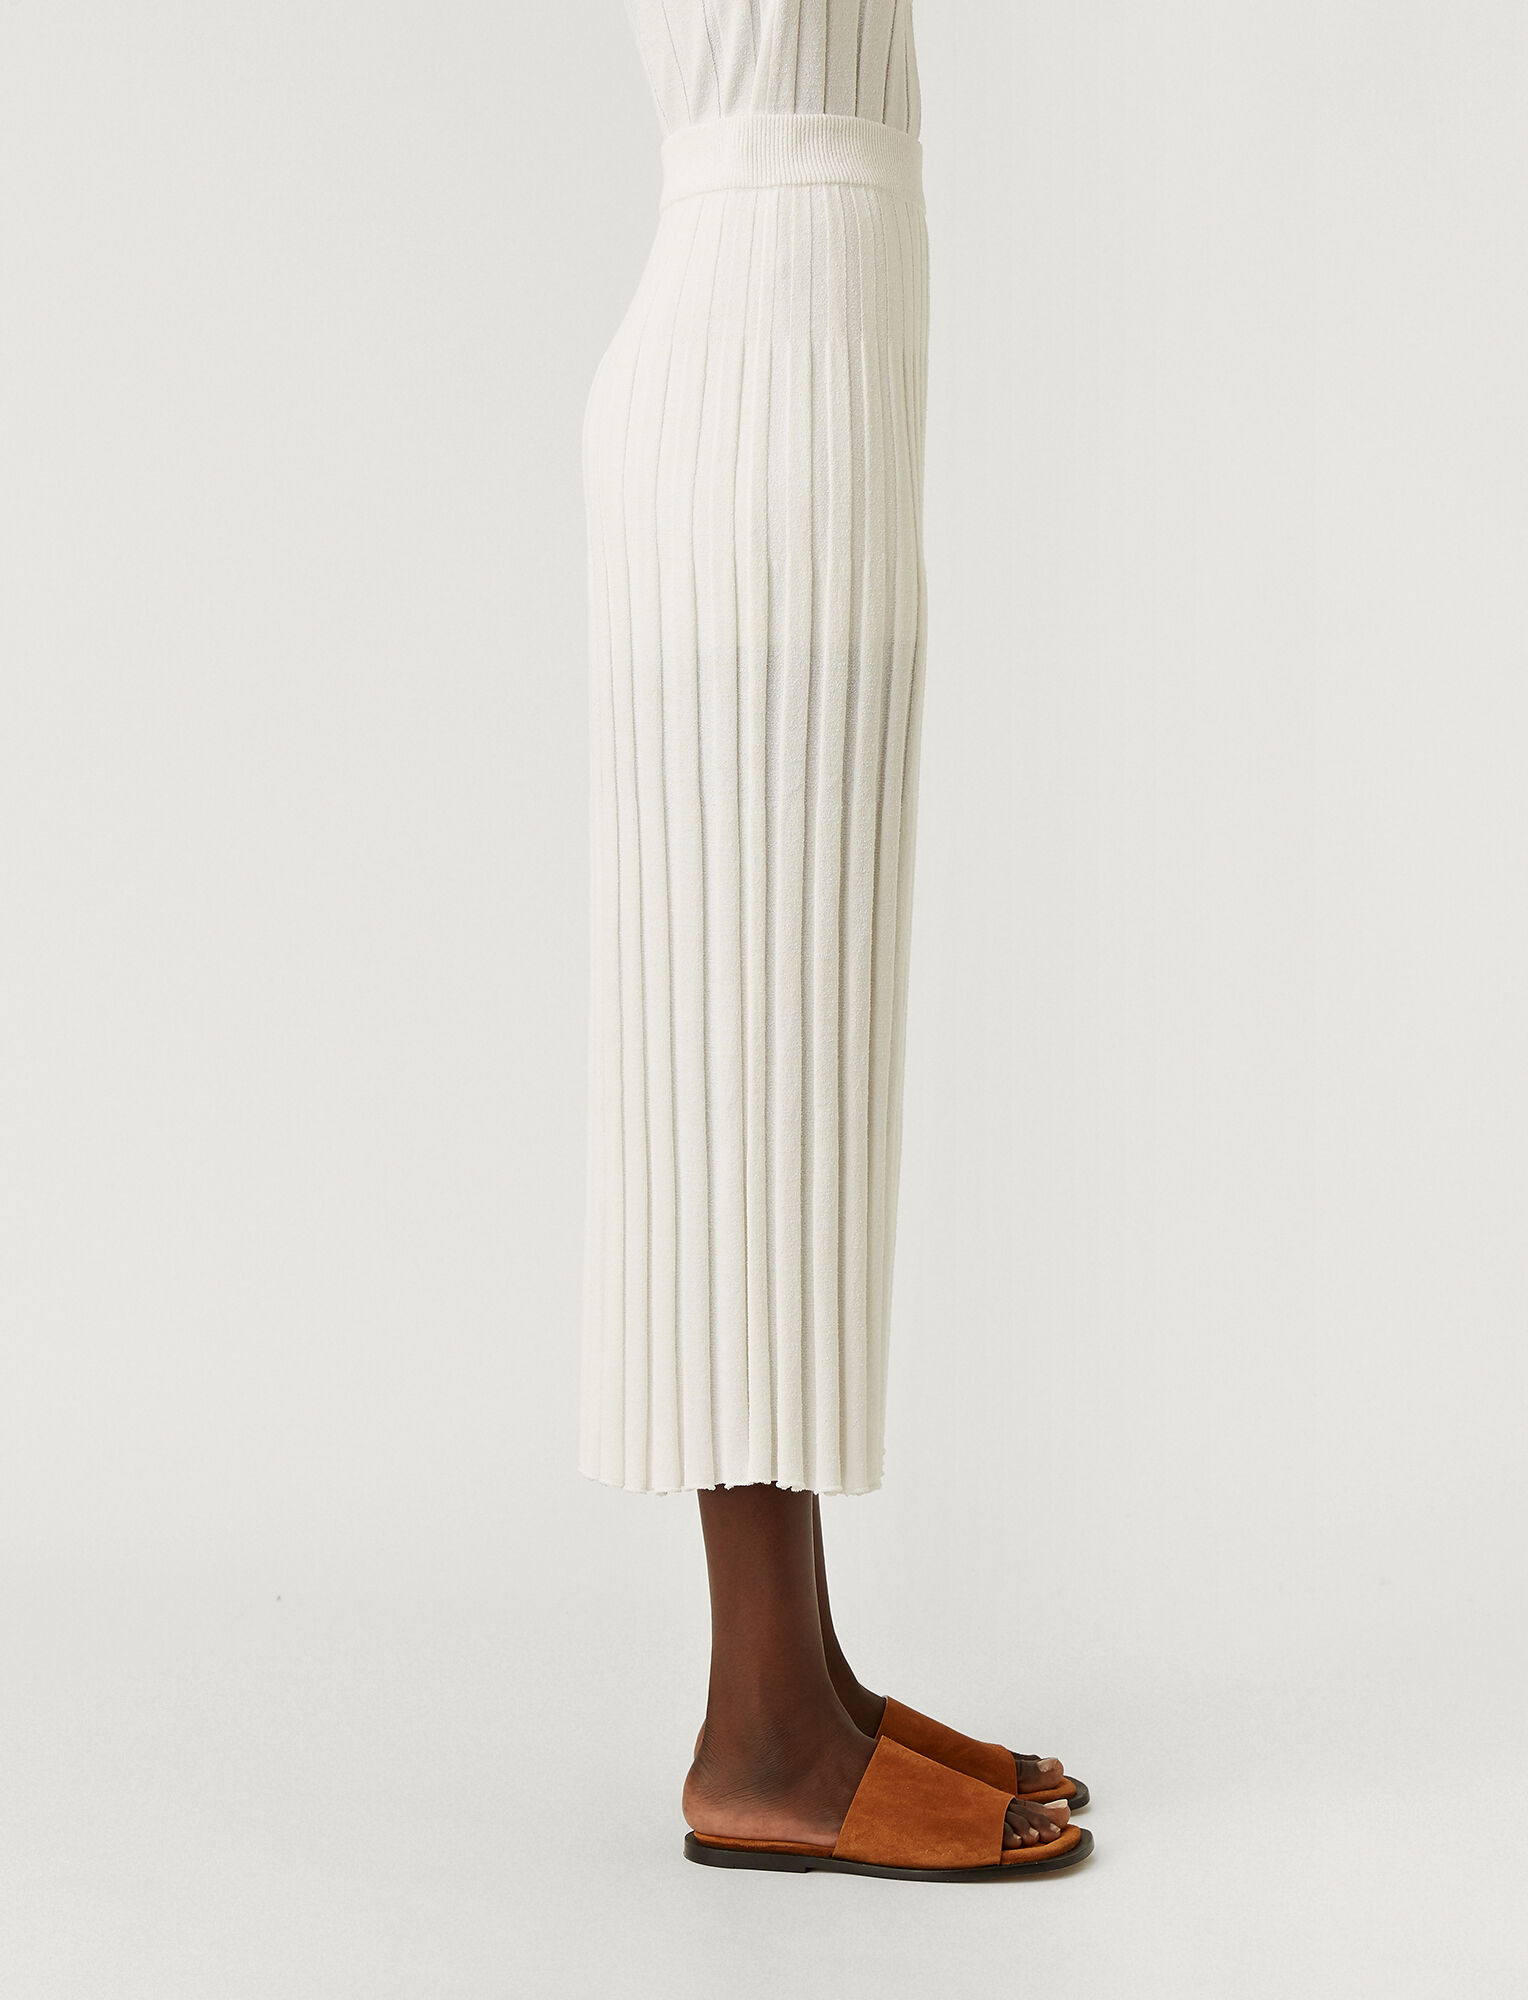 Joseph, Textured Rib Skirt, in OFF WHITE